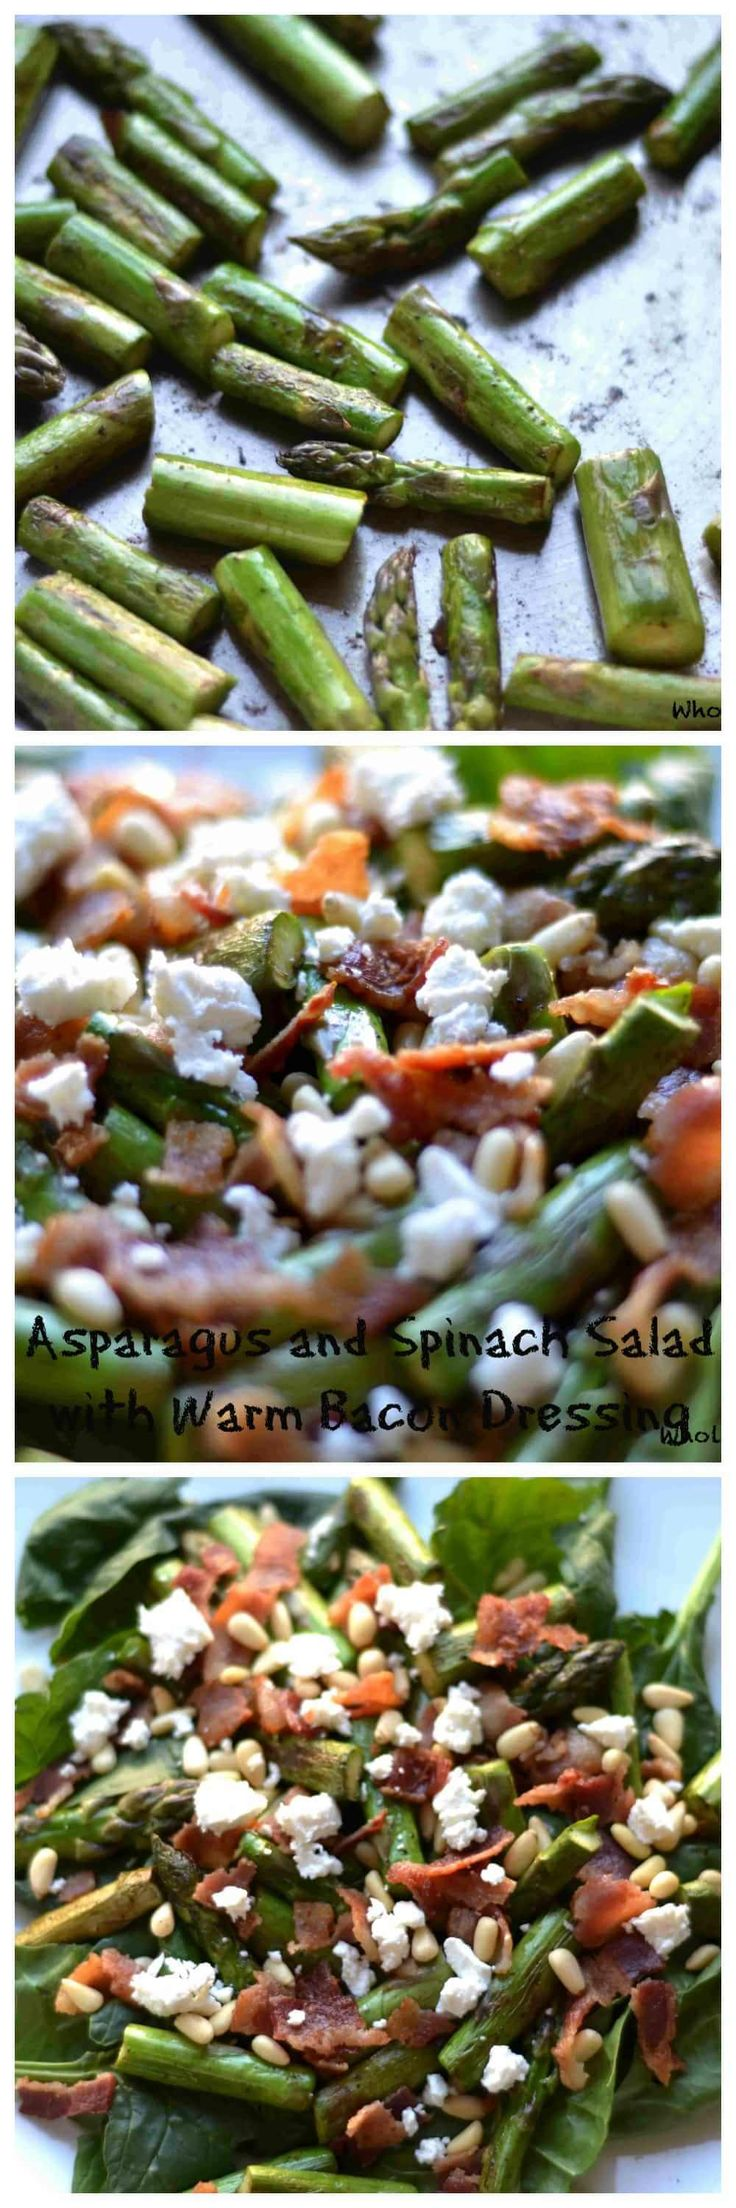 Asparagus and Spinach Salad with Warm Bacon Dressing.